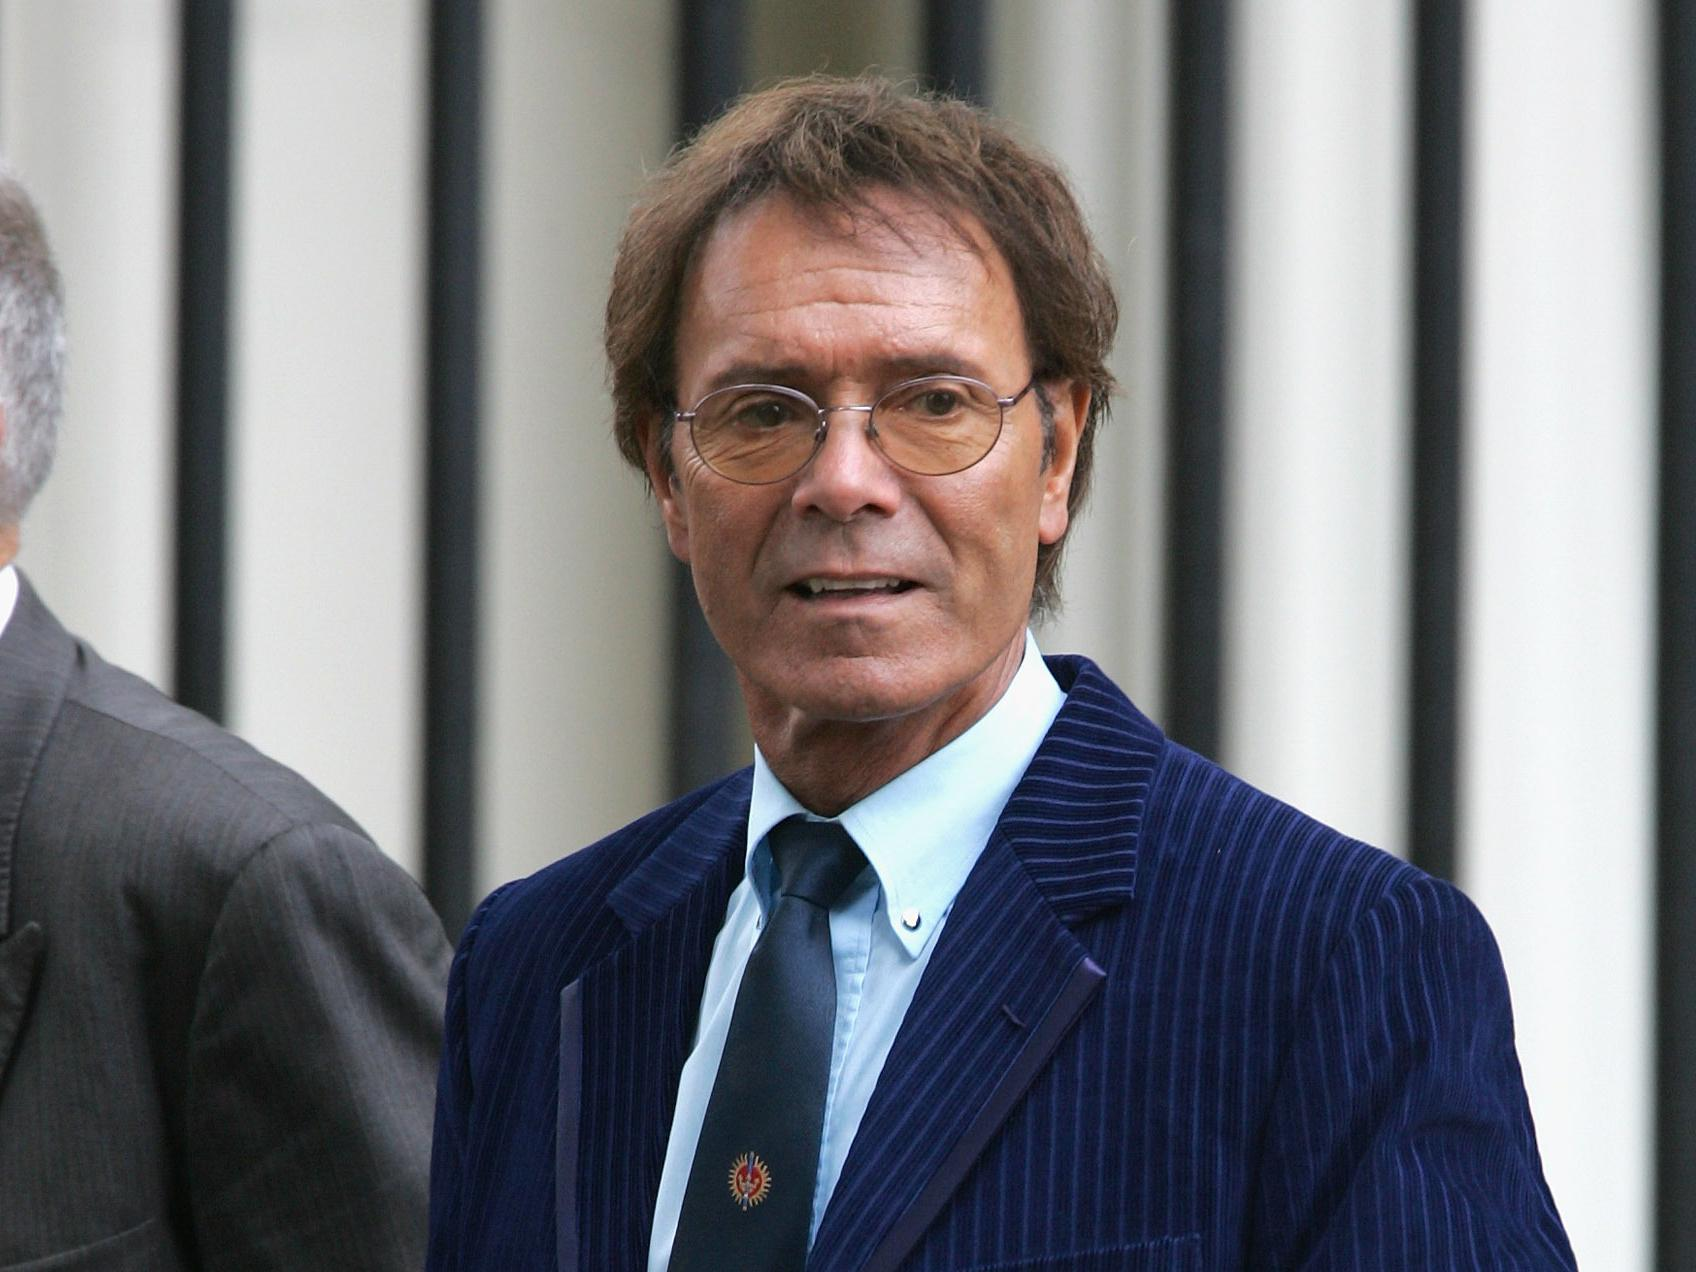 Sir Cliff Richard: South Yorkshire Police was 'strong-armed by BBC' over sexual offence probe | The Independent